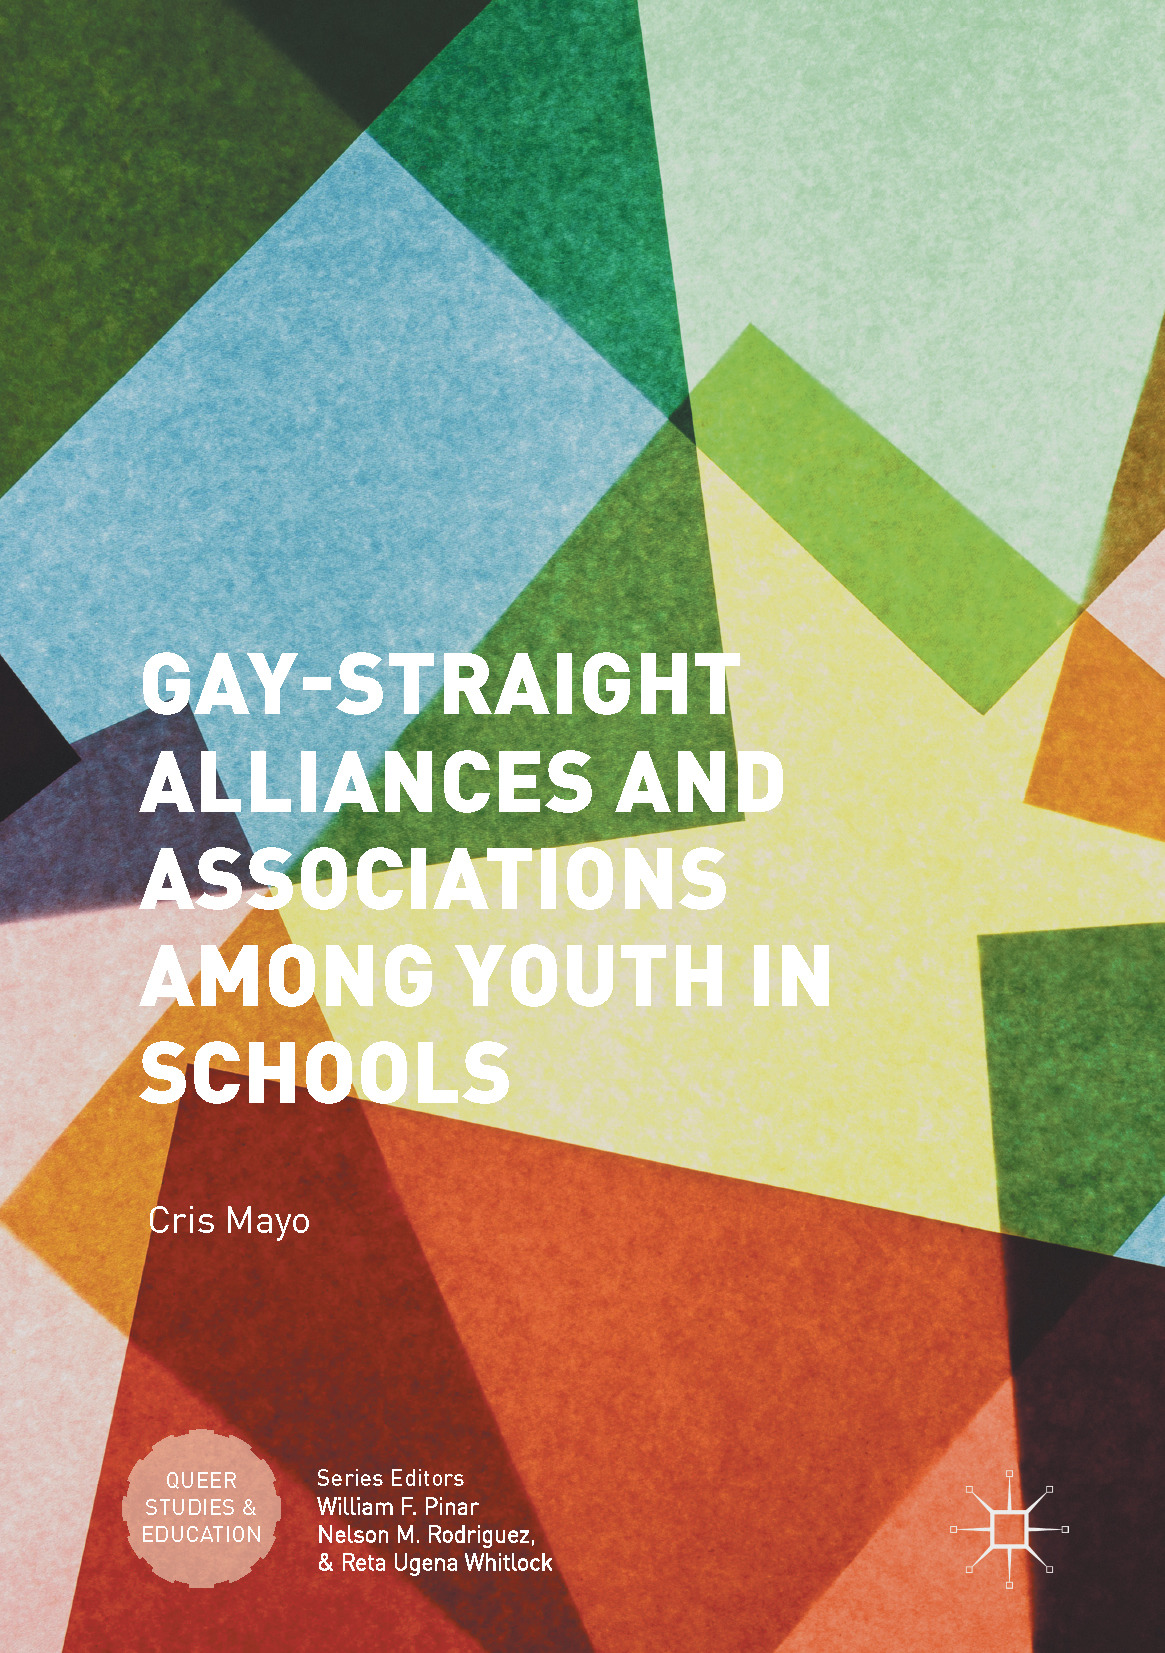 Mayo, Cris - Gay-Straight Alliances and Associations among Youth in Schools, ebook